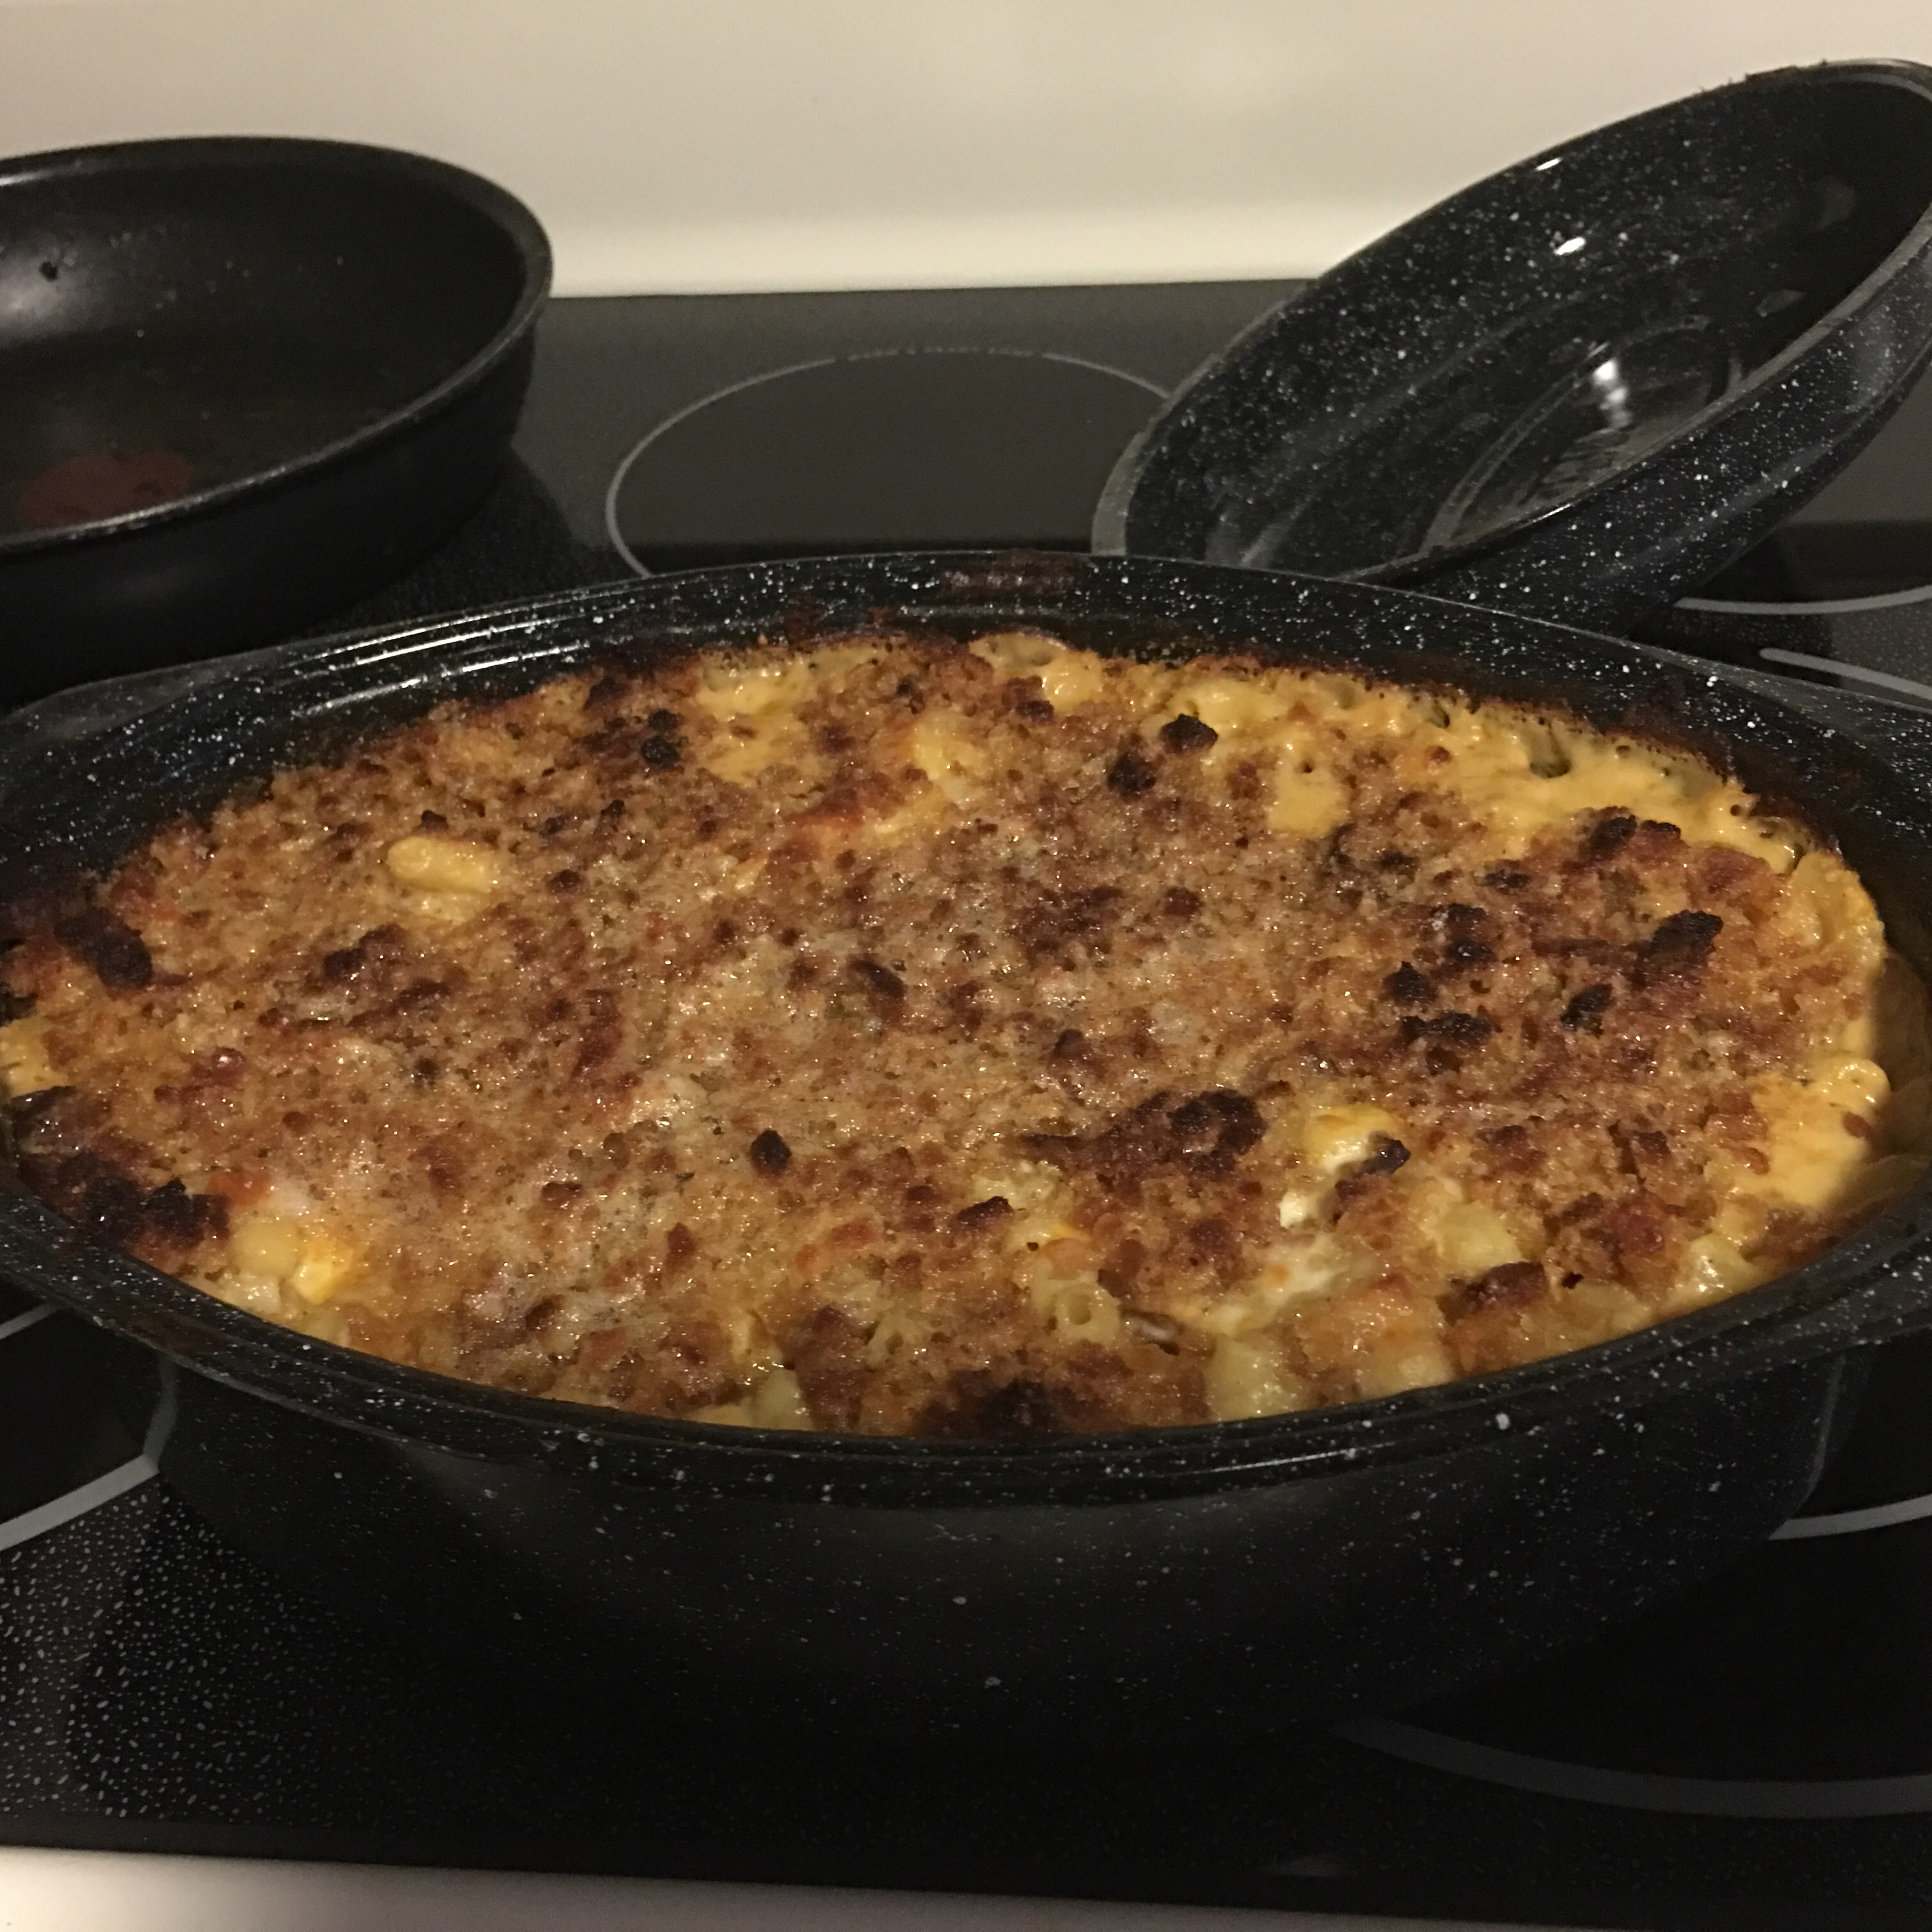 Scallop and Bacon Mac N' Cheese